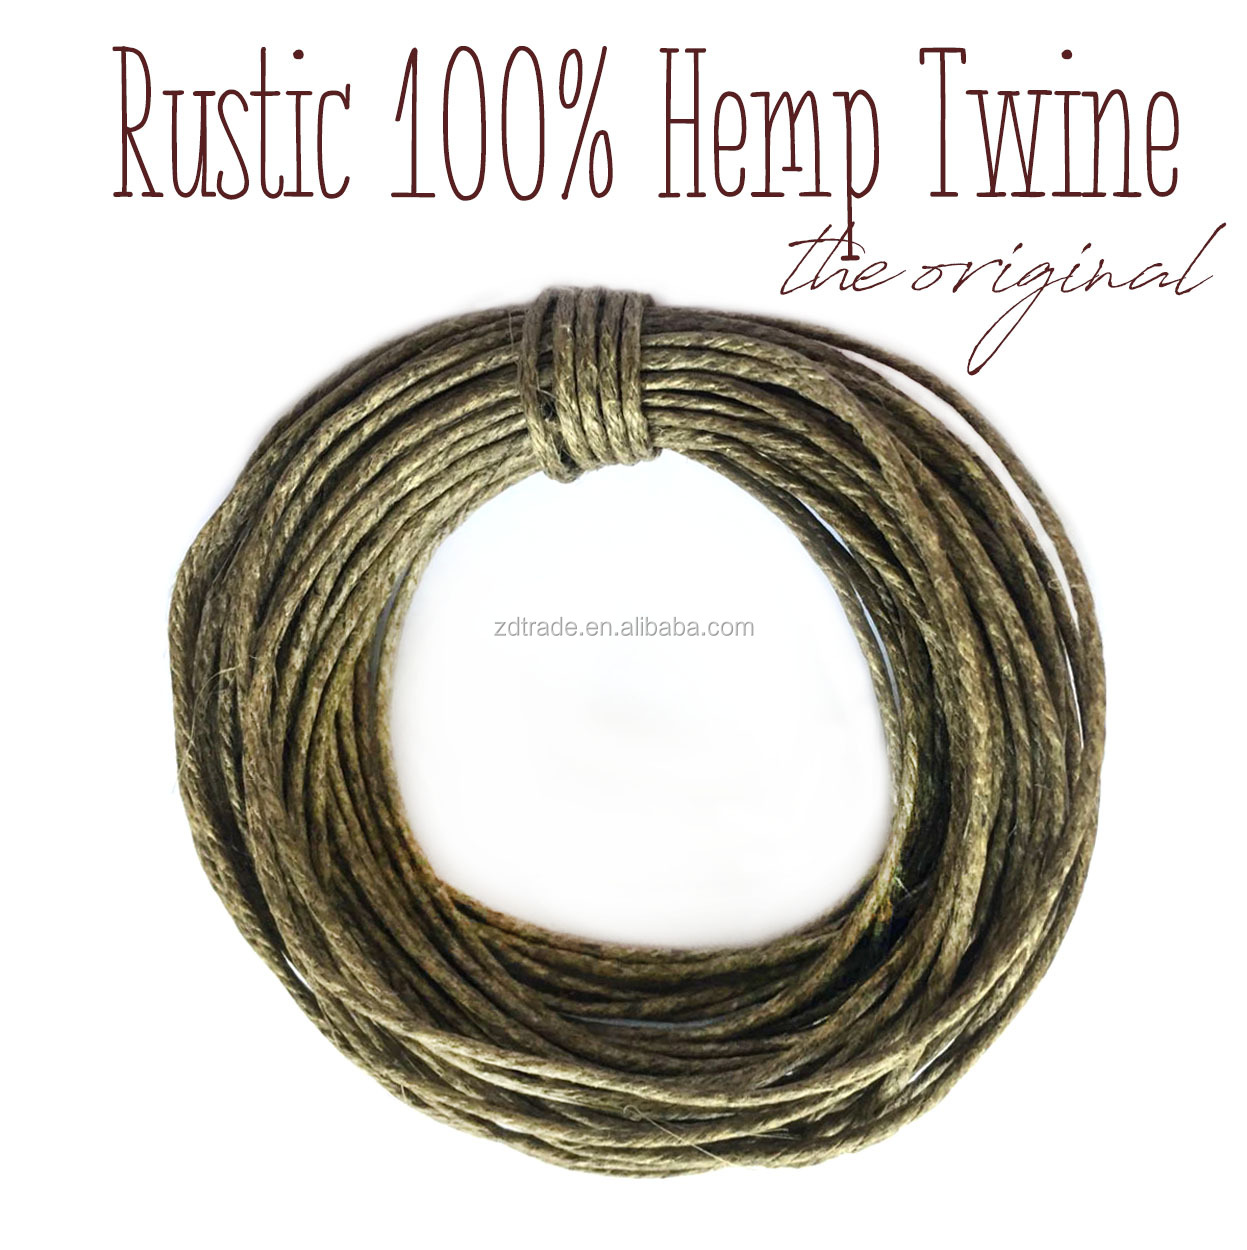 48LB Tested 1.5mm Rustic Feel Waxed 100% Hemp cord, Beading & Macrame